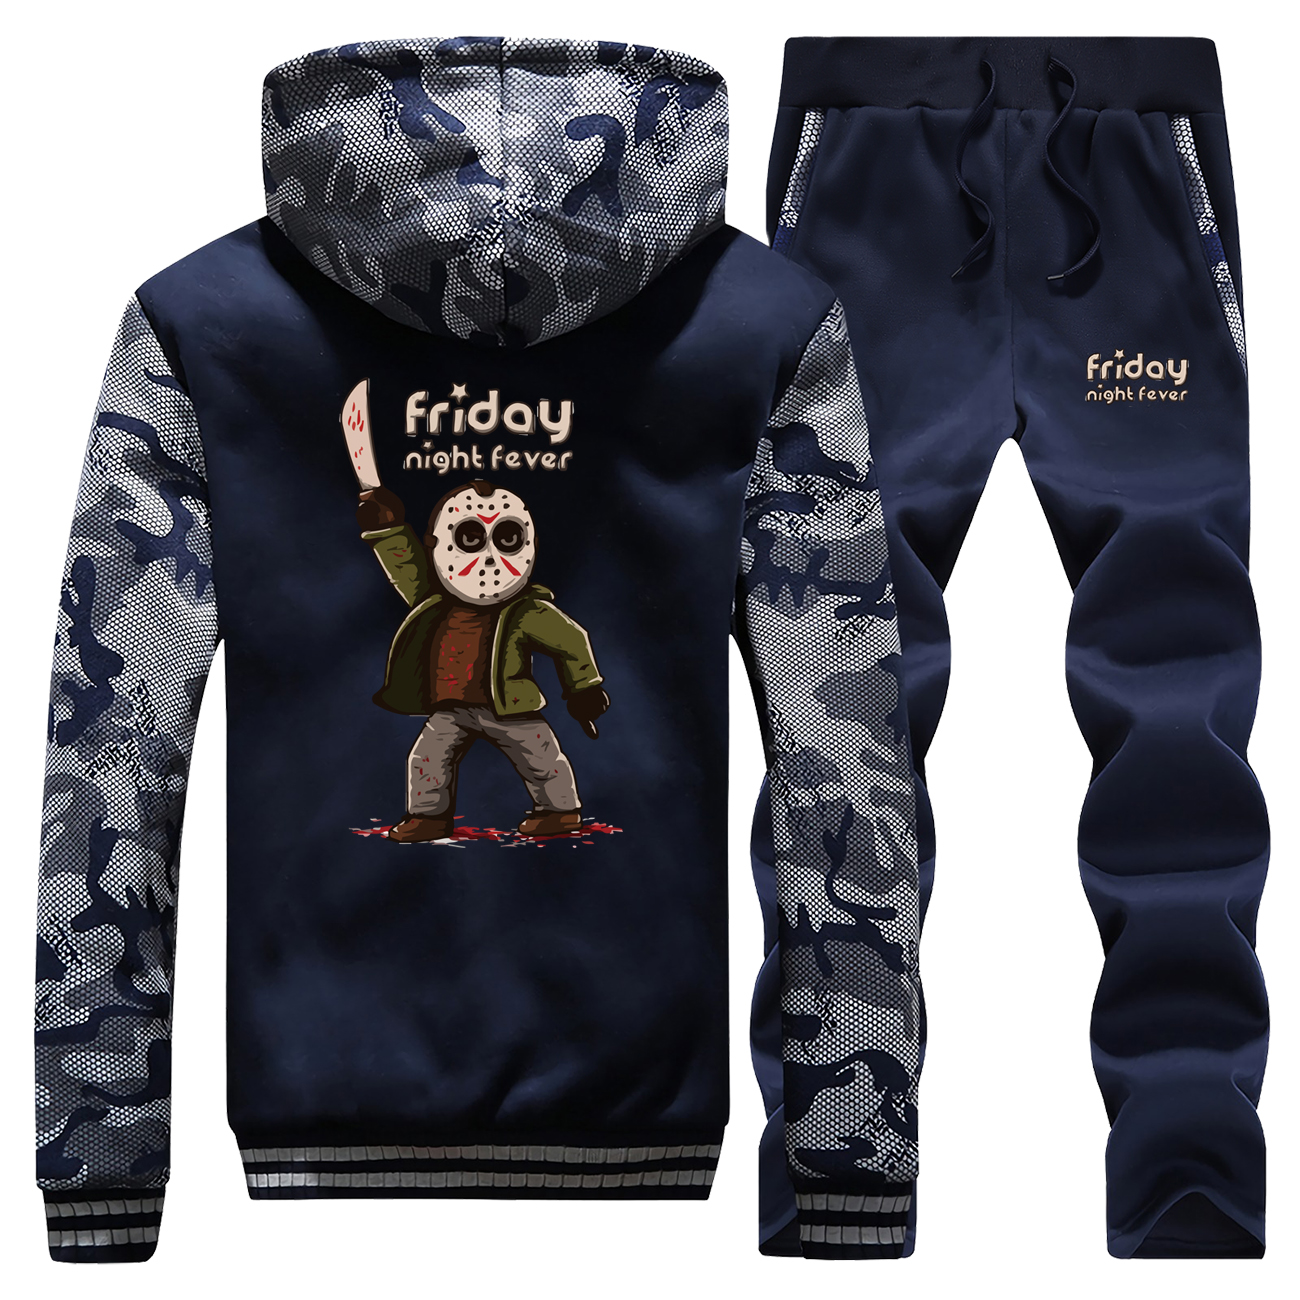 HORROR PRISON FRIDAY THE 13TH Jacket Pants Winter Friday Night Fever Funny Men Hoodie Track Suit Militray Thick  Coat Streetwear